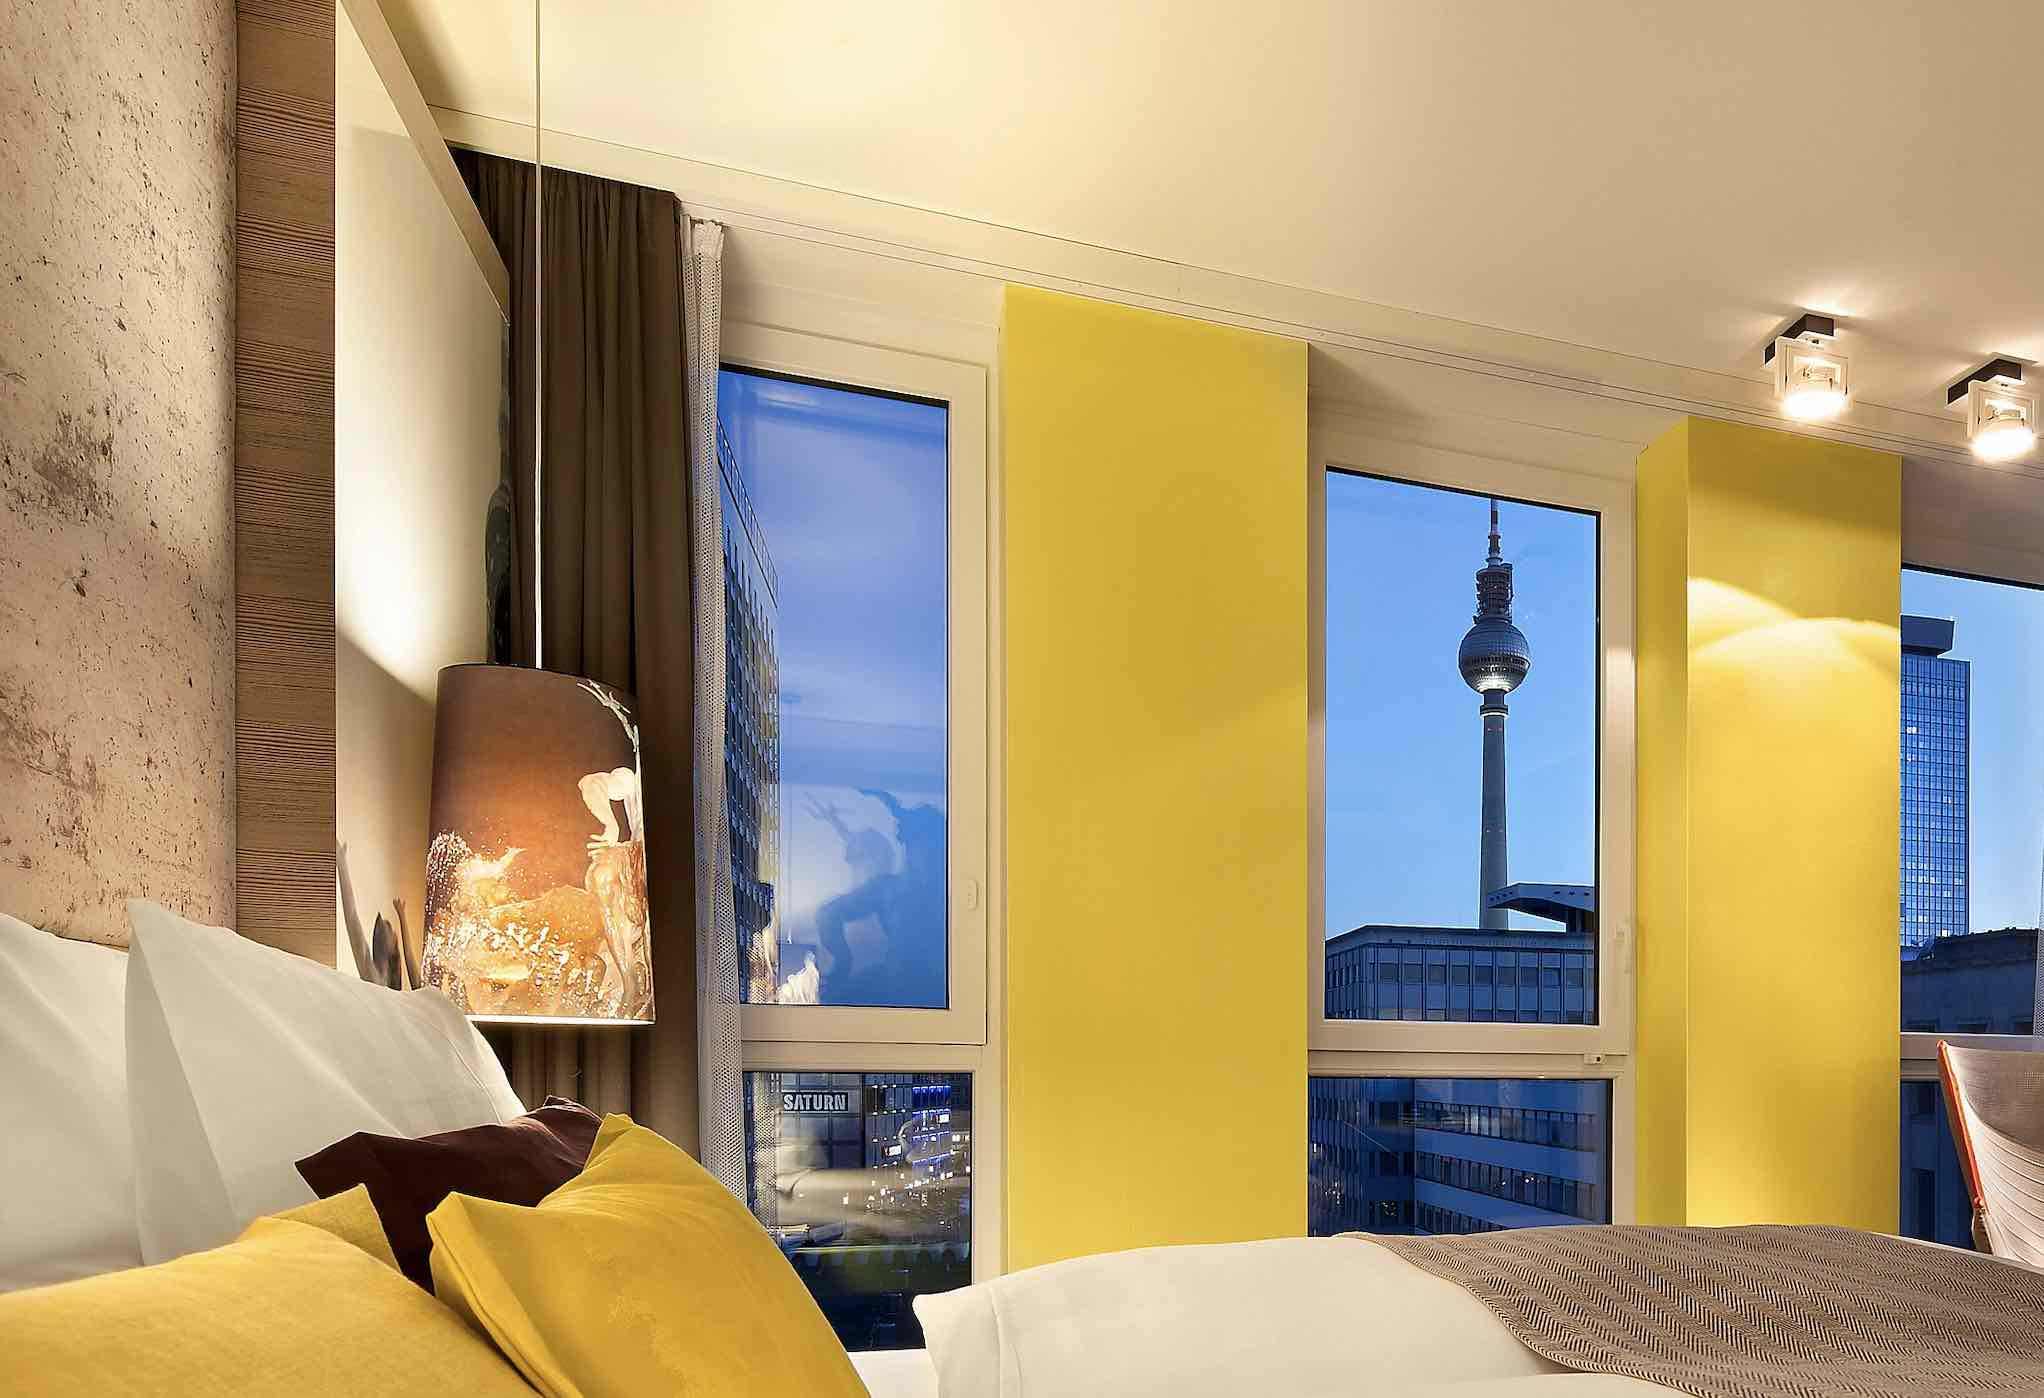 Hotel Indigo Berlin - Centre Alexanderplatz is one of the best boutique hotels in Berlin with bedroom view with Berlin Tower